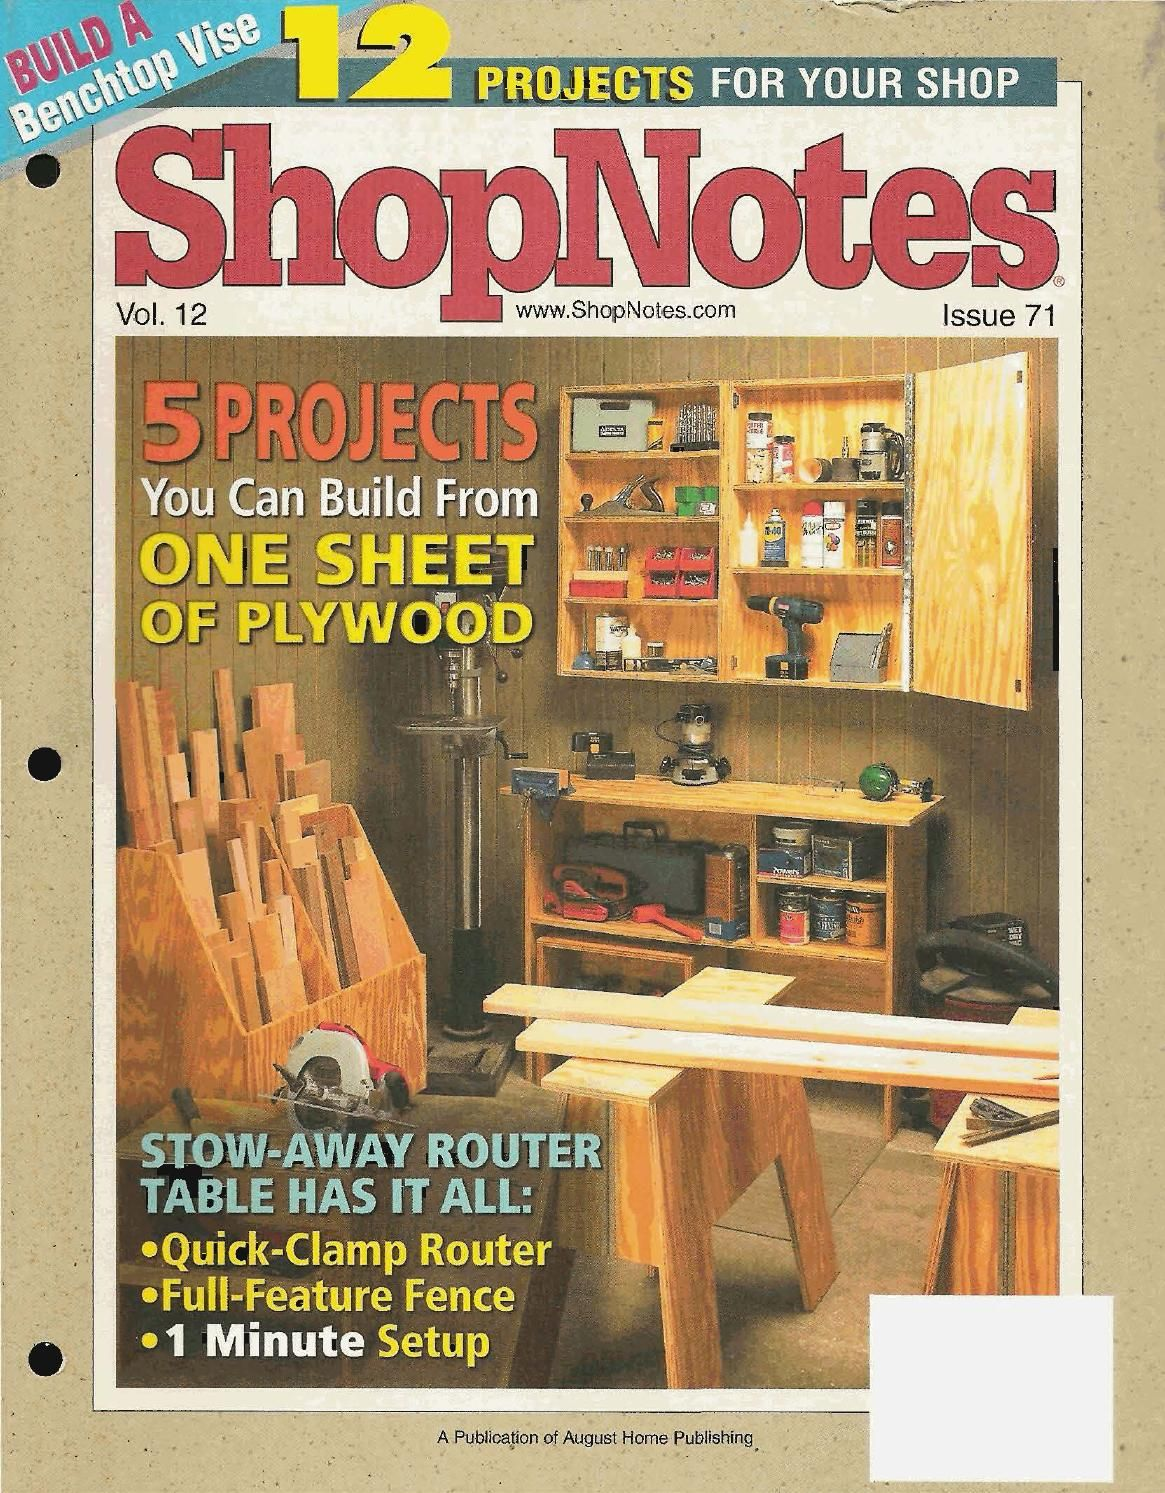 Shopnotes issue 71 by adrian kuney shop ideas pinterest shopnotes issue 71 by adrian kuney greentooth Choice Image